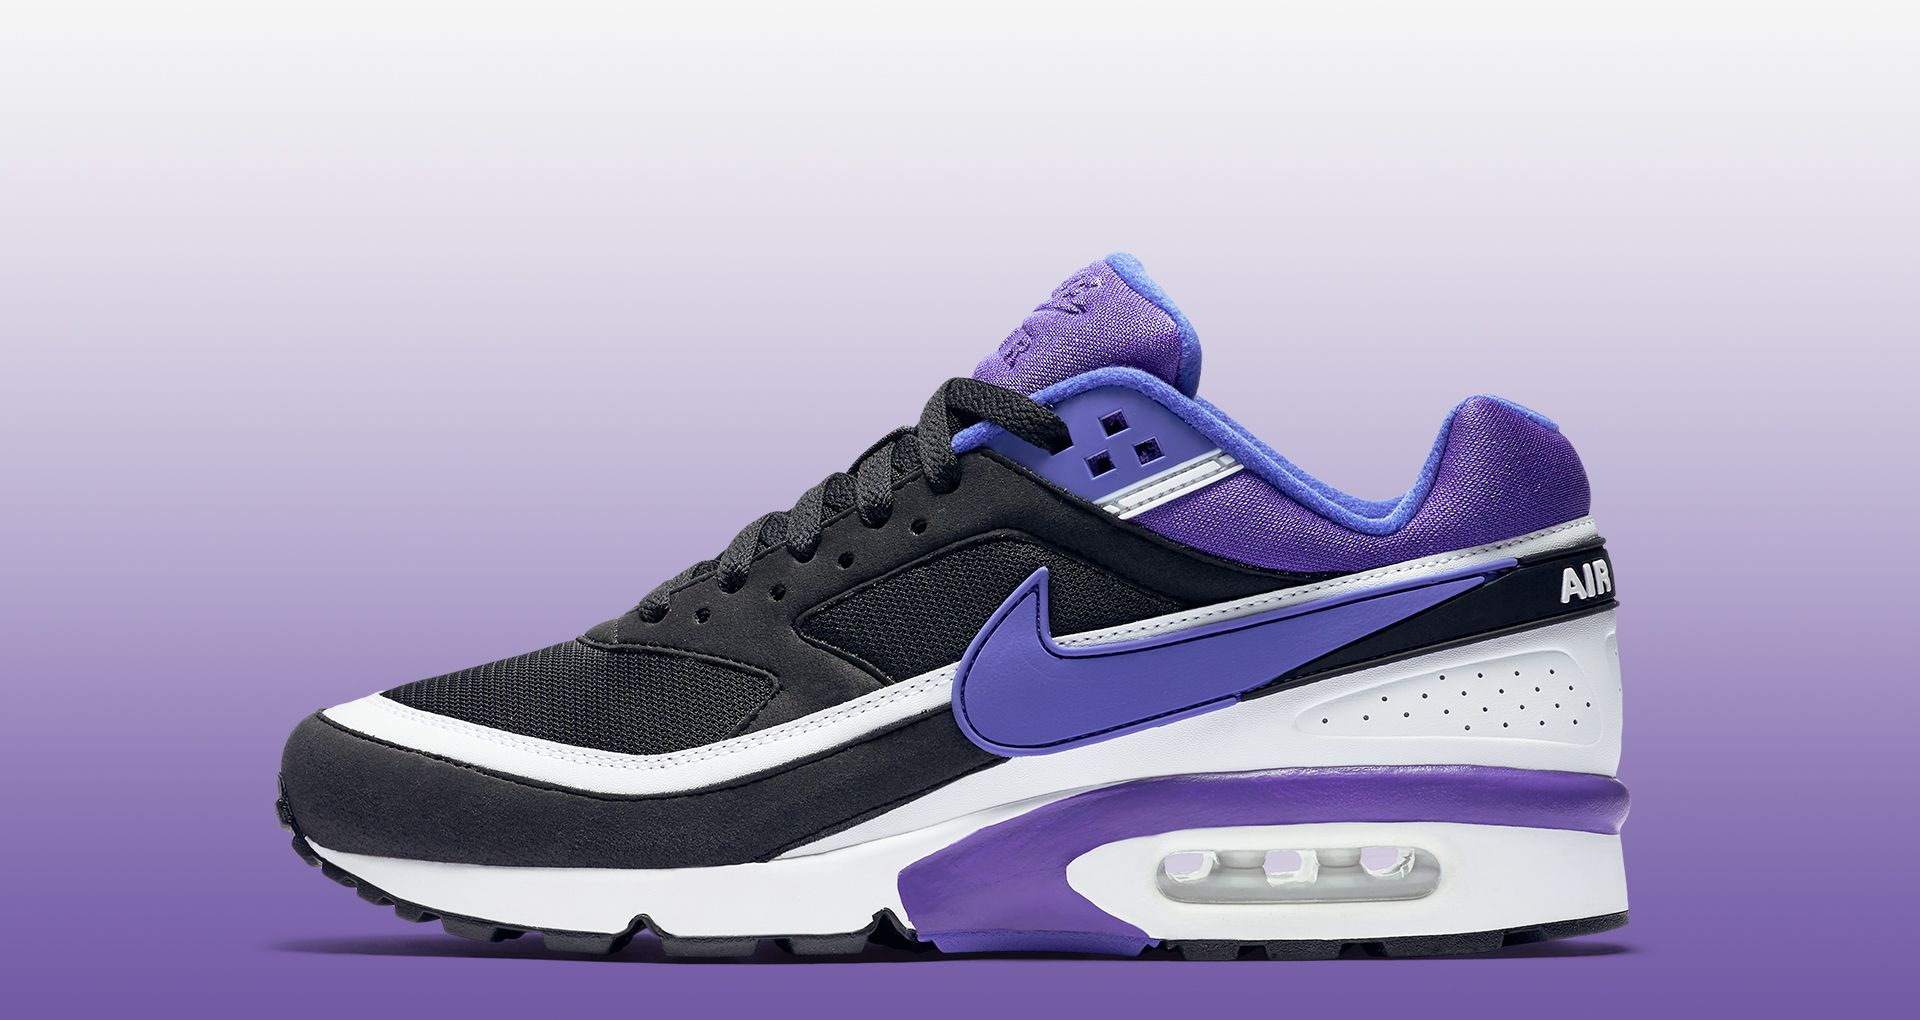 0e7778d502 Women's Nike Air Max BW 'Persian Violet' Release Date. Nike+ SNKRS